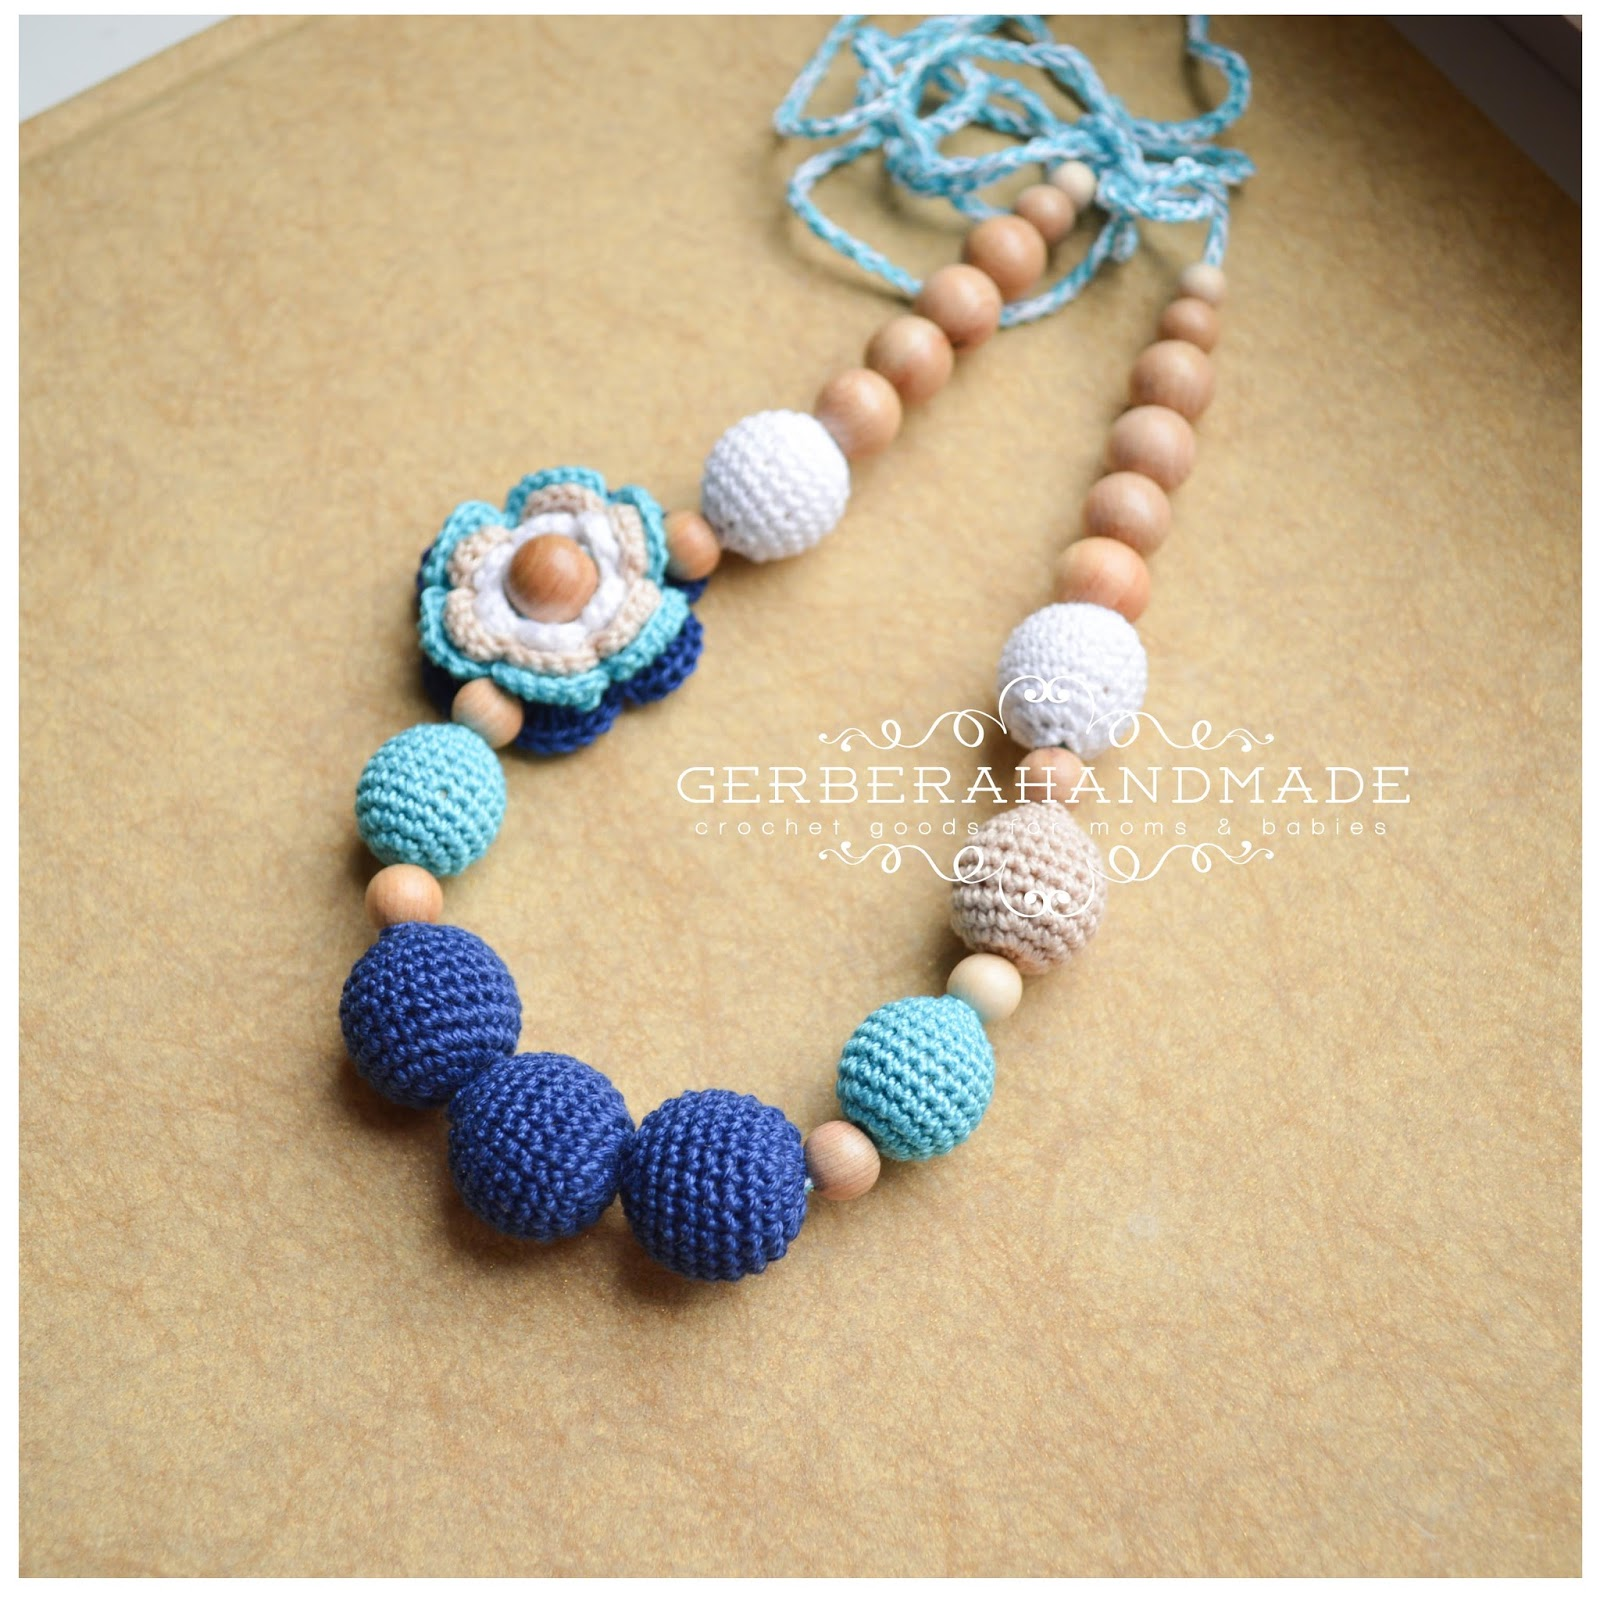 nursing necklace, teething necklace, babywearing necklace, breastfeeding necklace, babycarrier, baby carrier necklace,mommy necklace,mom necklace, baby necklace, kangaroo care, kangaroo necklace, kangaroo care necklace, Chomping Necklace, baby wrap sling, baby wrap, eco friendly, eco friendly toy, wooden jewelry, new mom gift, attachment parenting, new baby gift